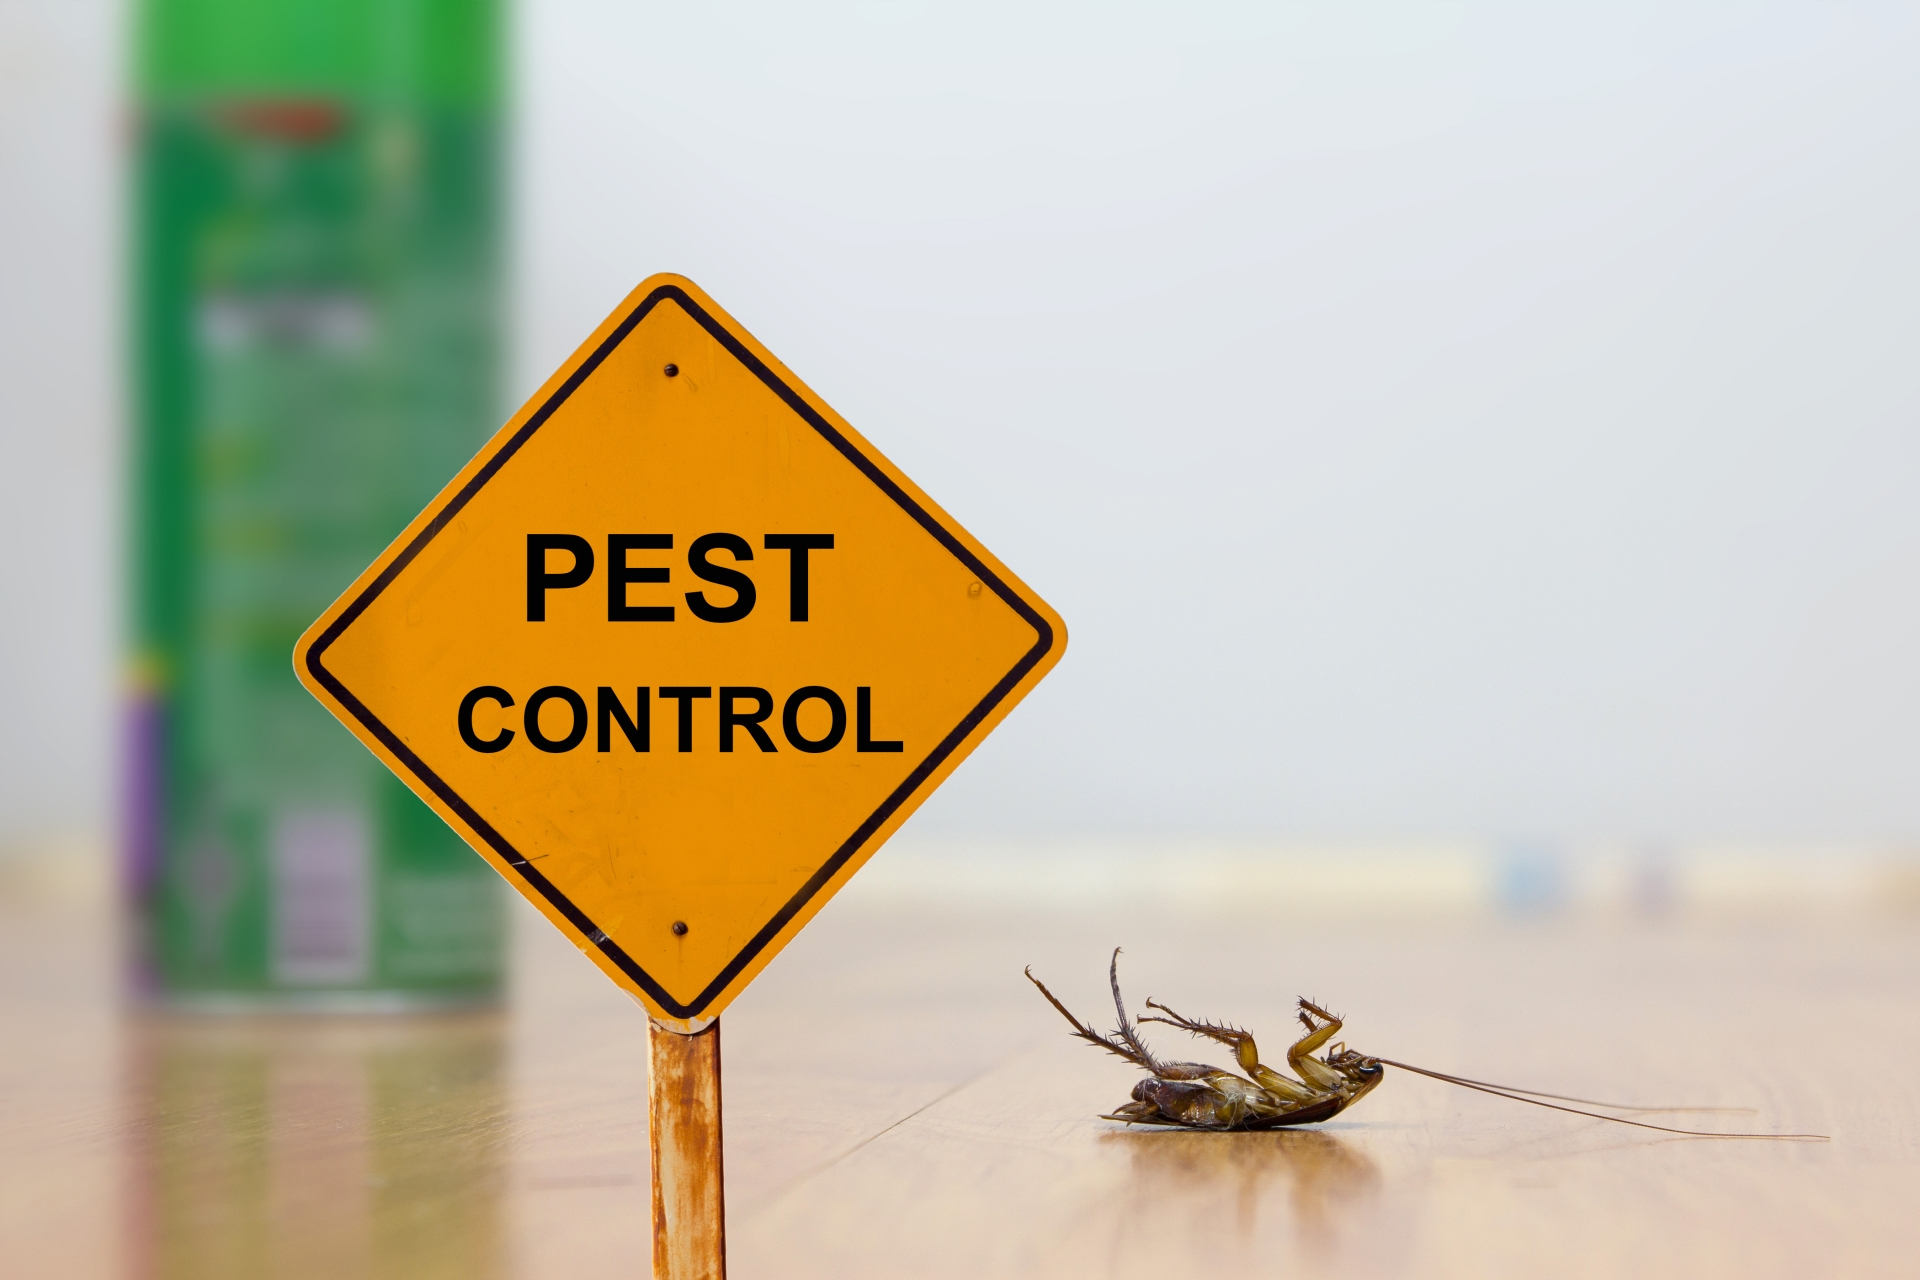 24 Hour Pest Control, Pest Control in Chertsey, Ottershaw, Longcross, KT16. Call Now 020 8166 9746